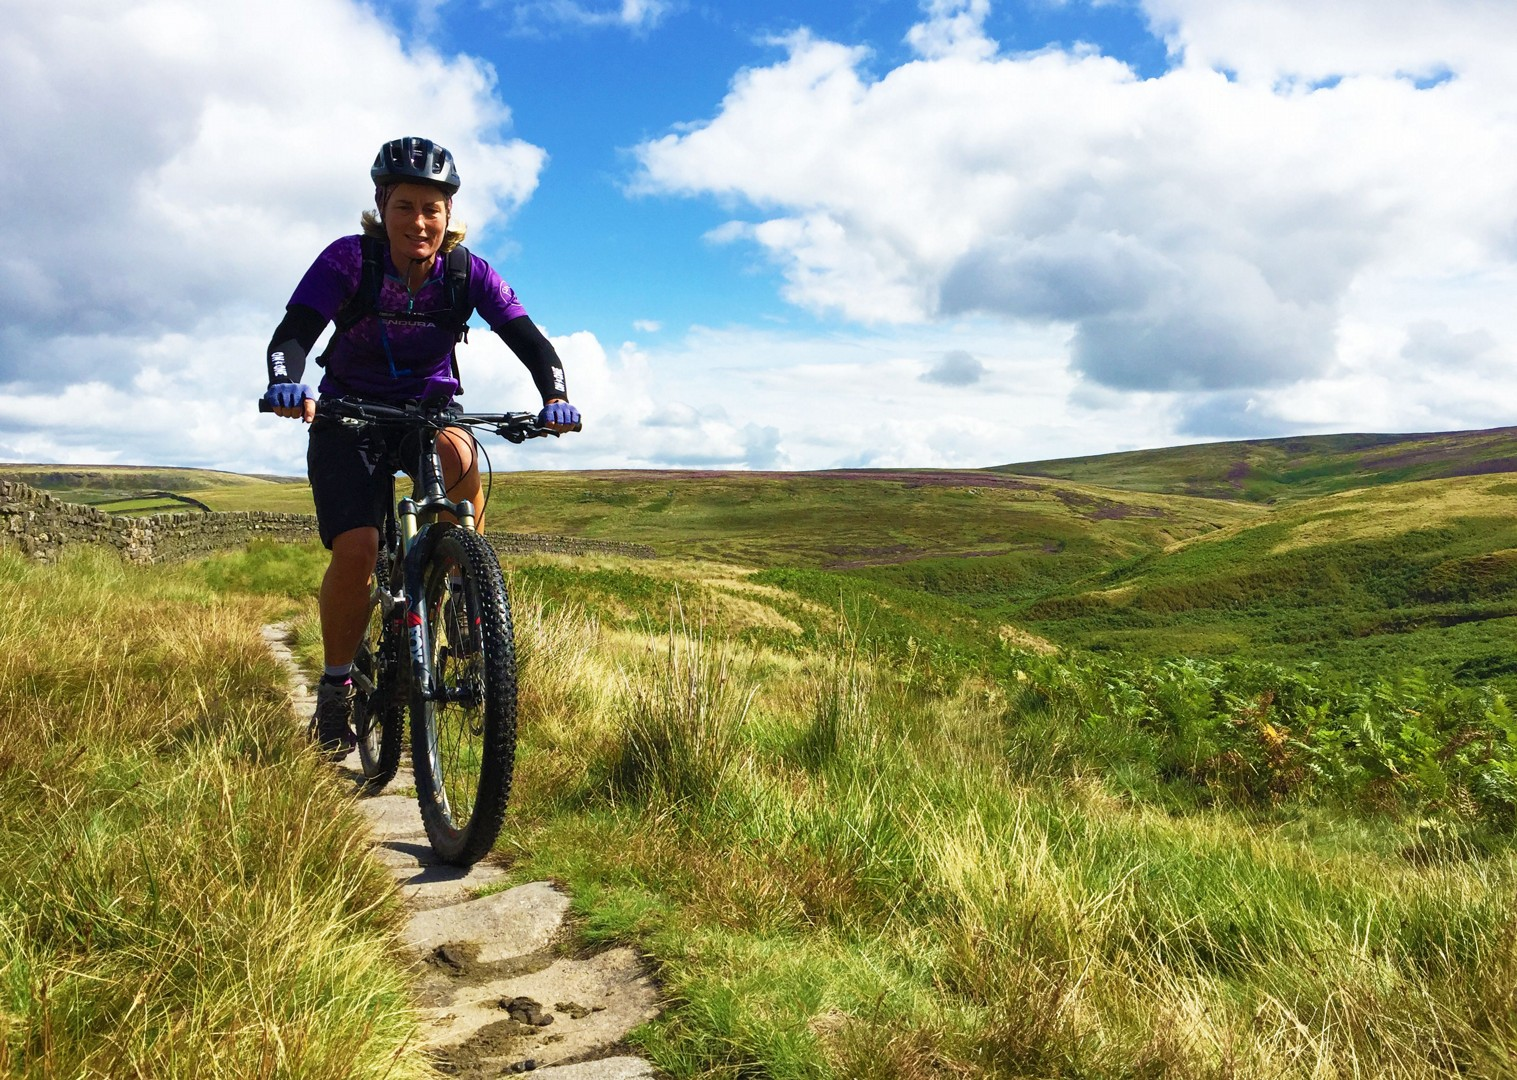 pennine-bridleway-uk-mountain-bike-weekend-mtb.JPG - UK - Pennine Bridleway - Guided Mountain Bike Weekend - Mountain Biking